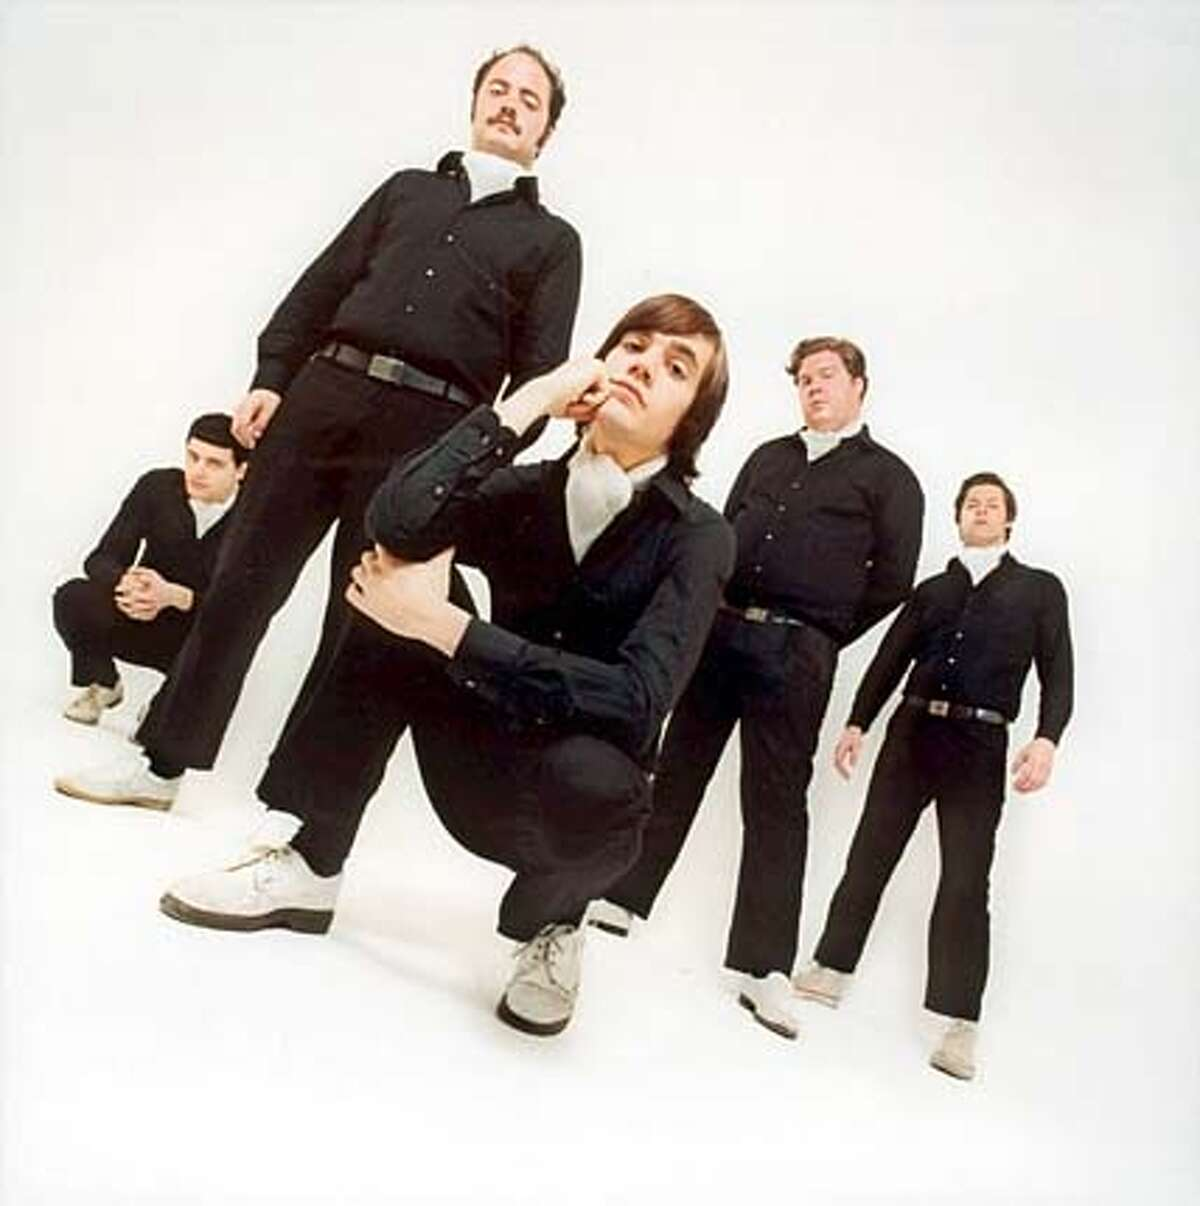 Stones pupils: The Hives